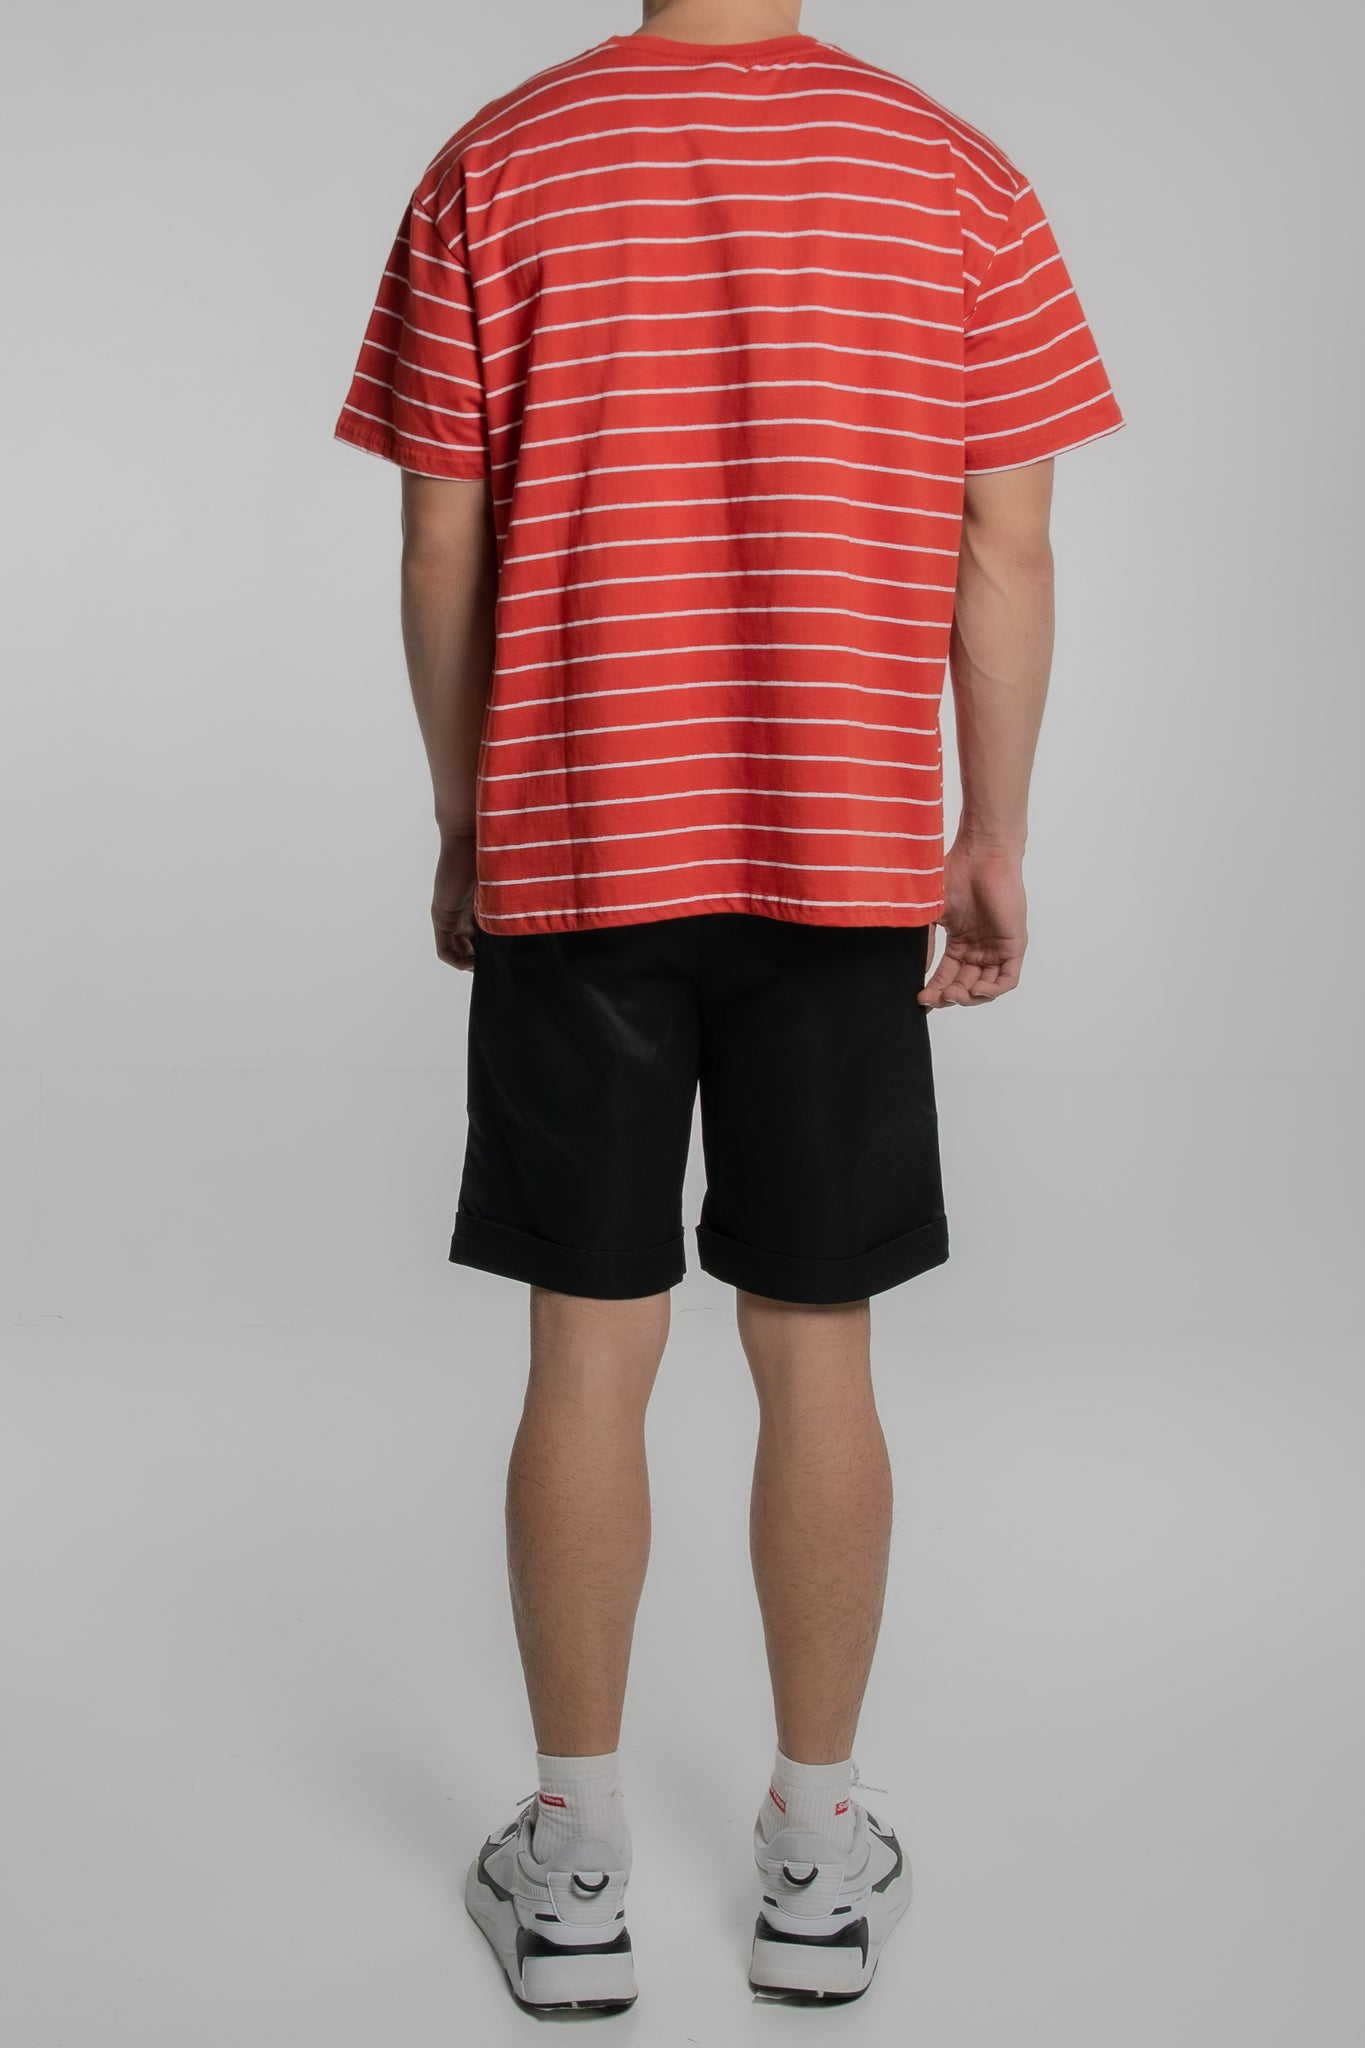 3P Horizontal Striped T-Shirt (Red)